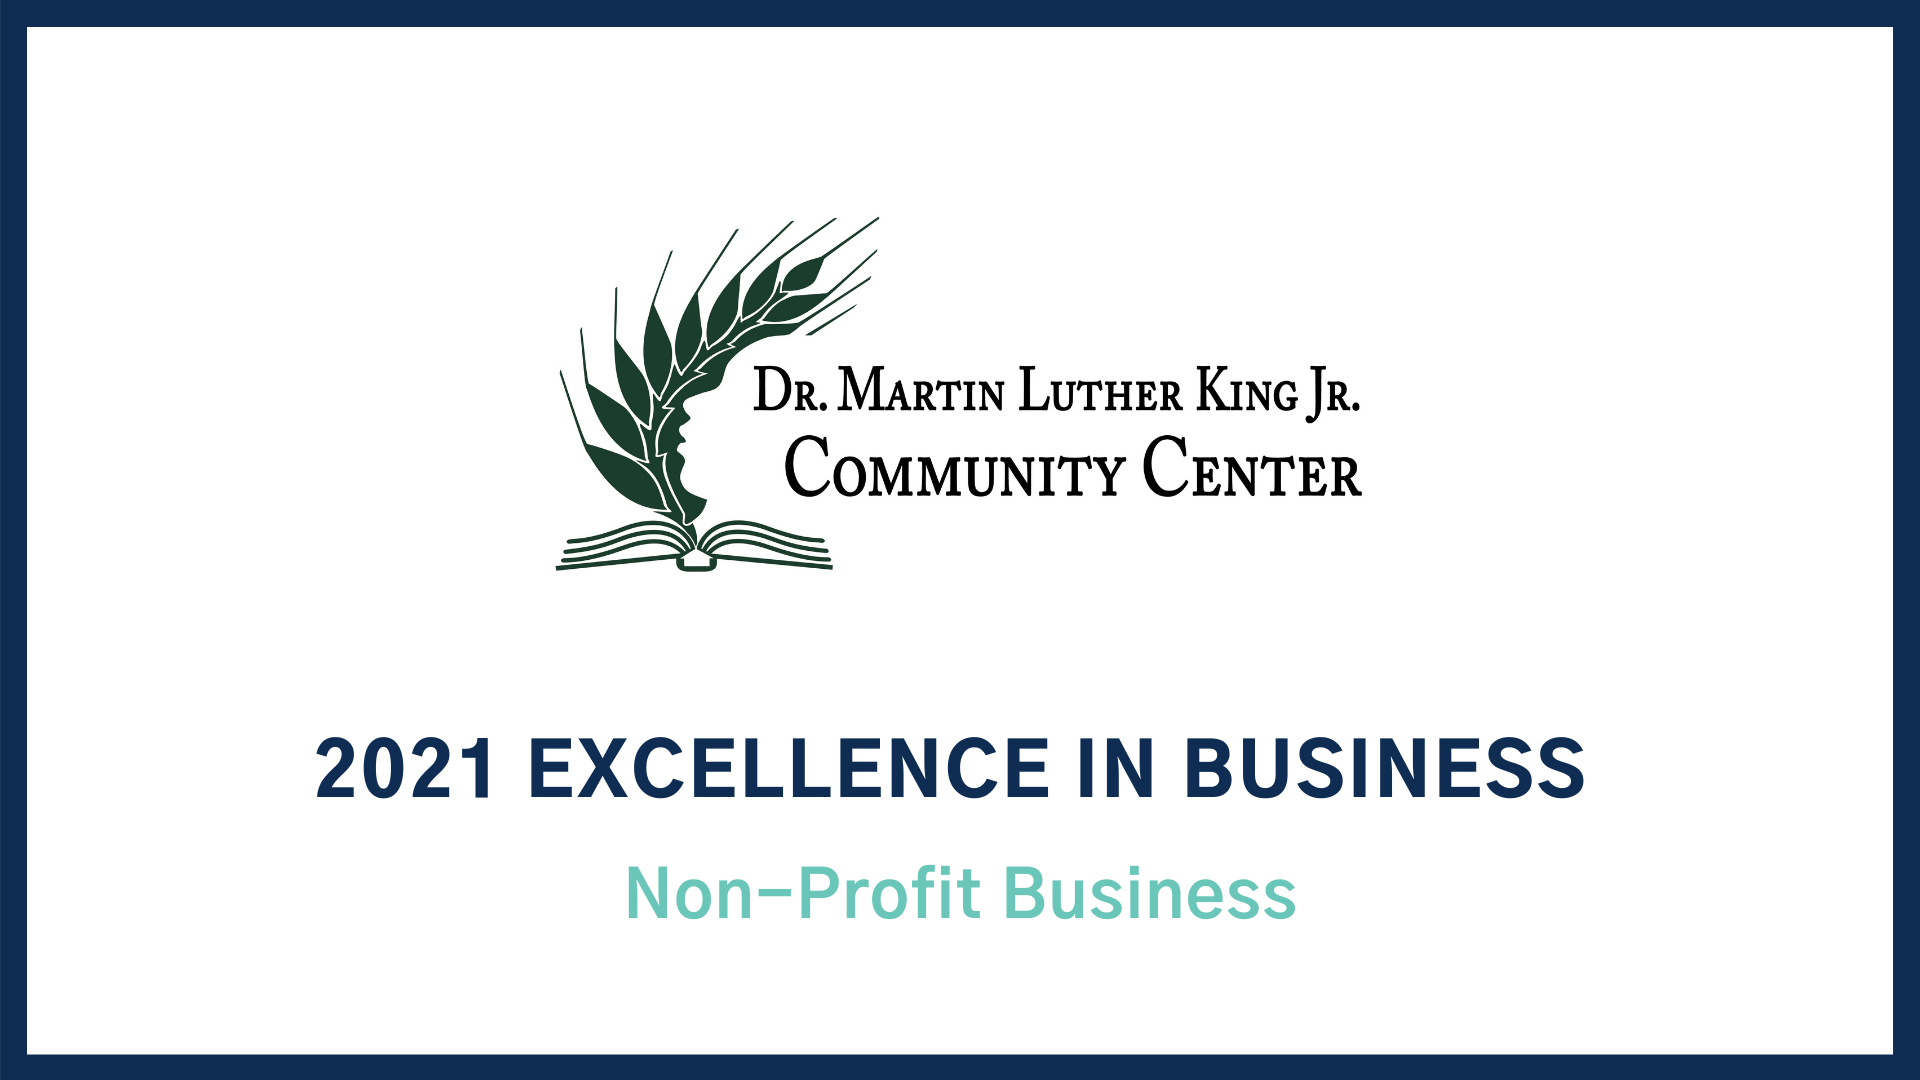 2021 Excellence in Business Award: Nonprofit The Dr. Martin Luther King Jr. Community Center